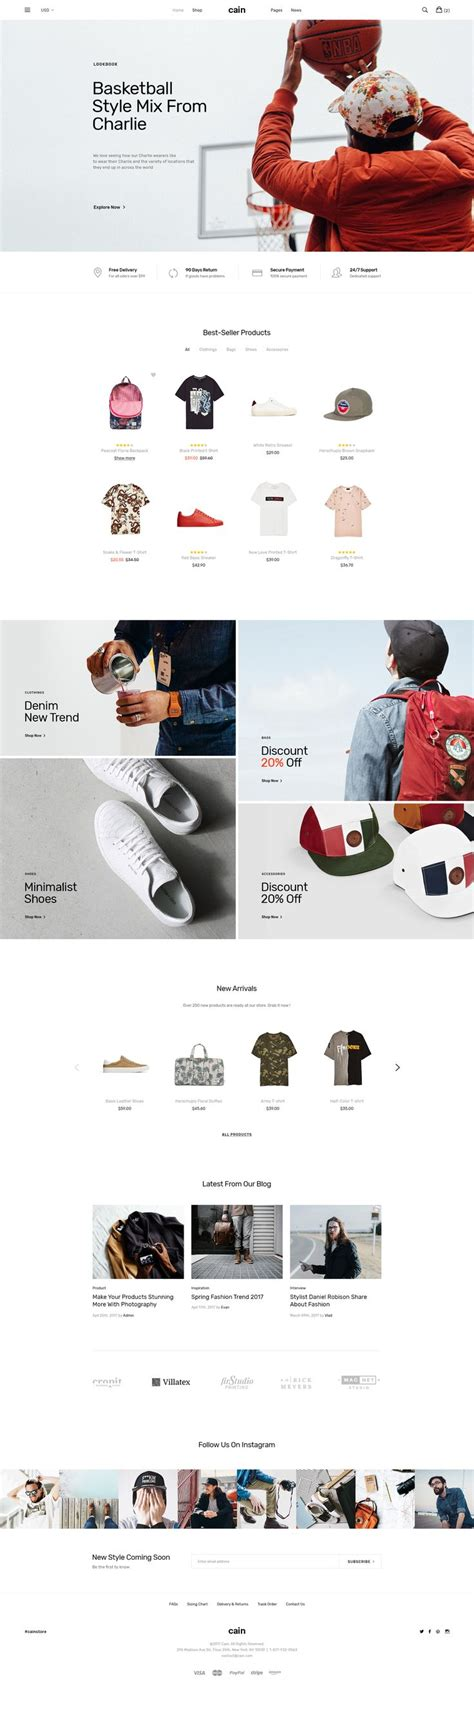 caign email to template mailchimp best 25 edm template ideas on pinterest email